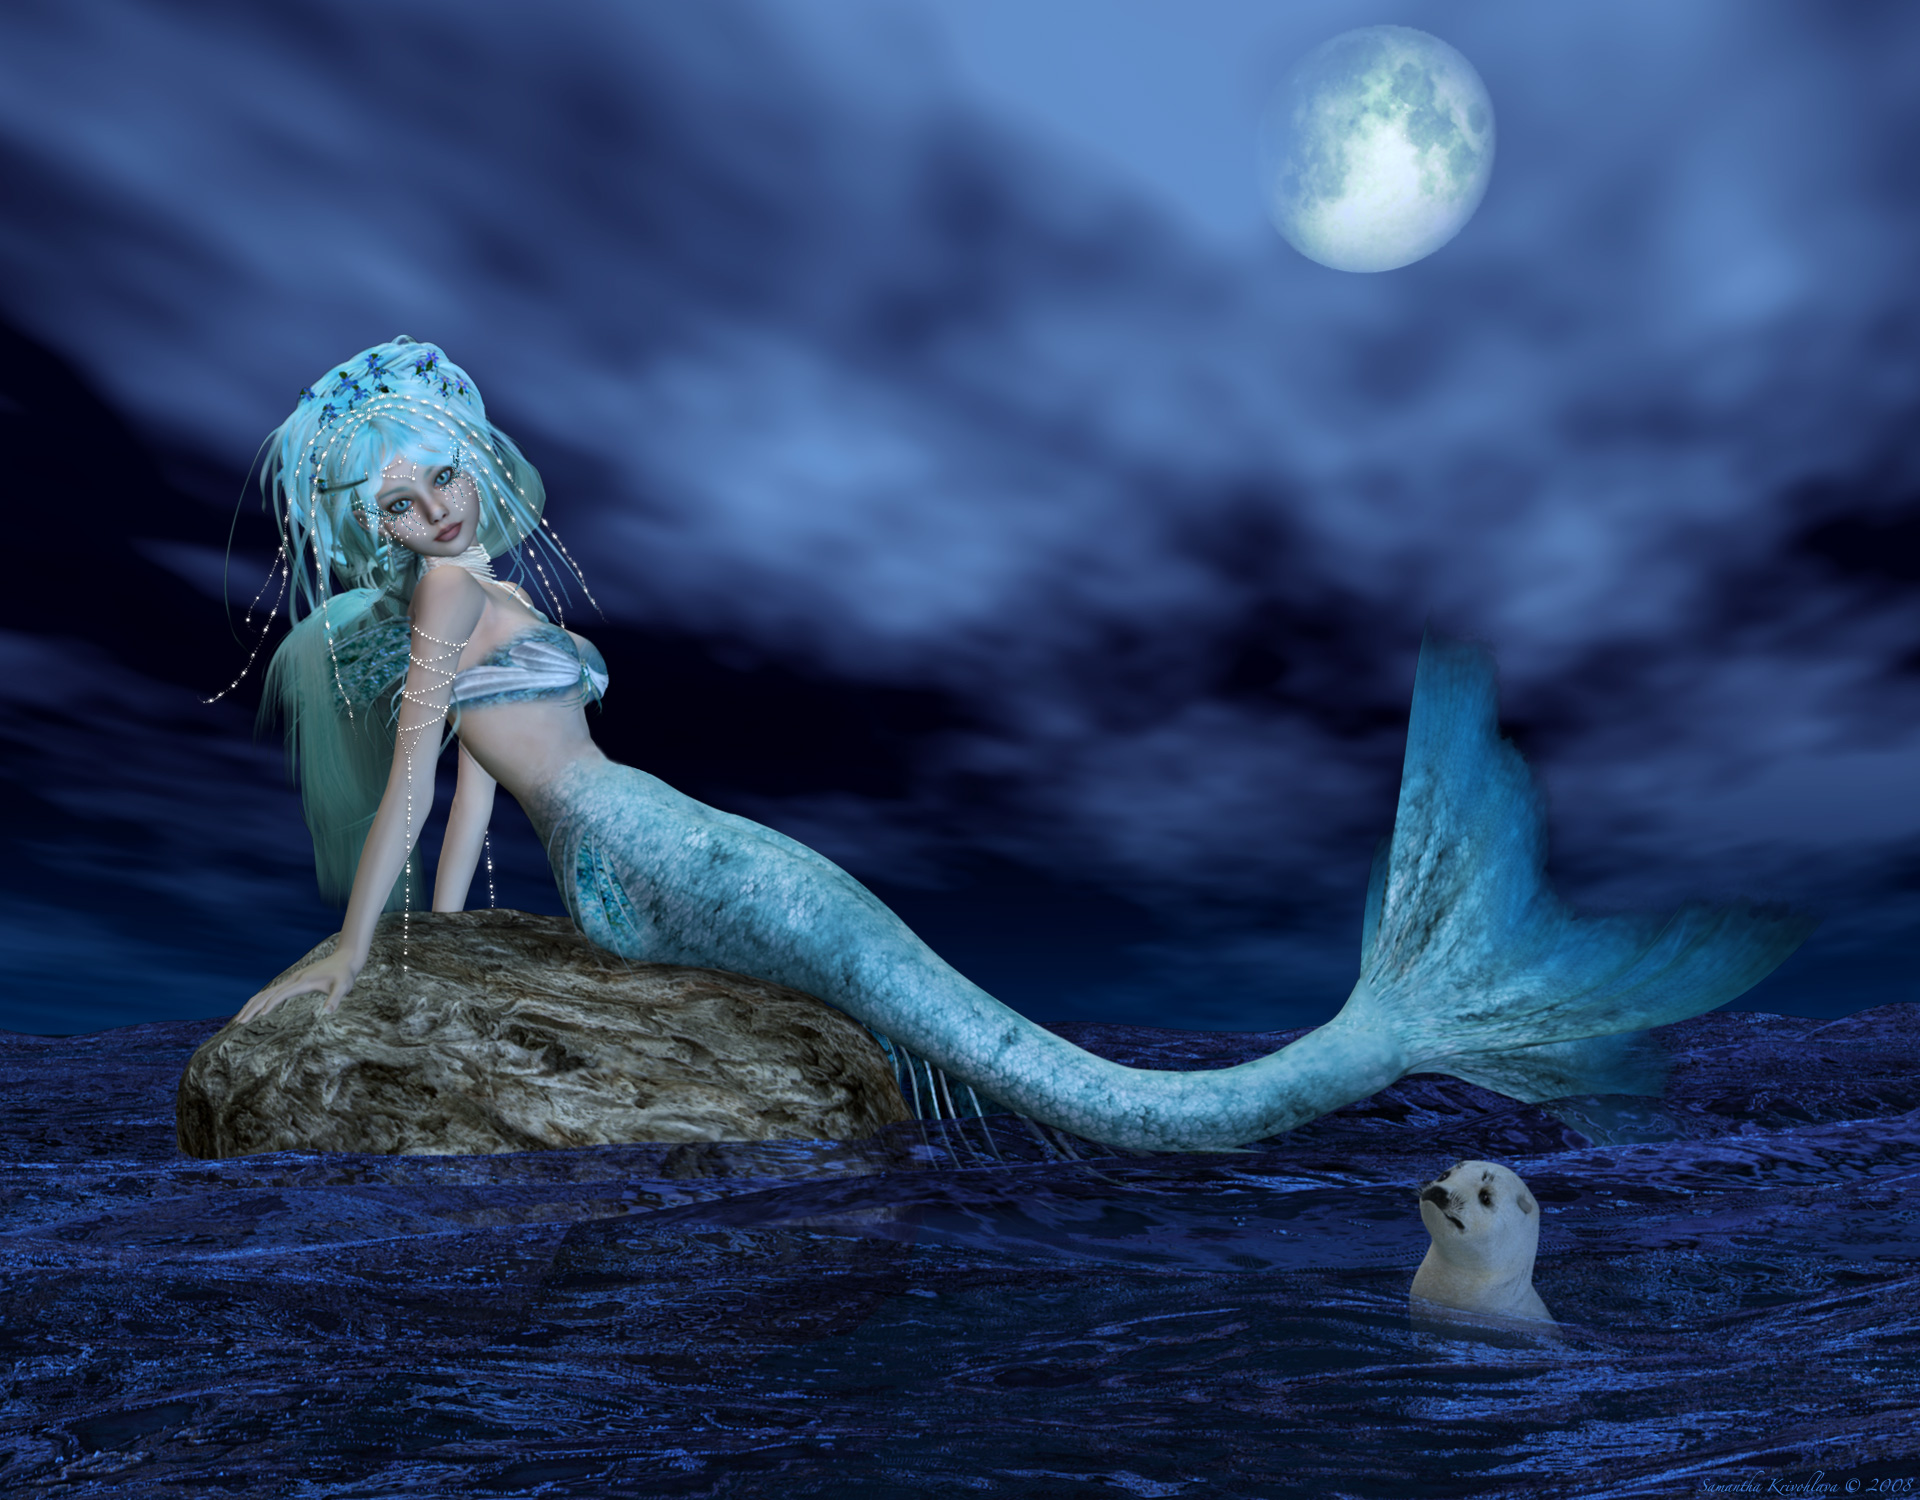 Anime Mermaids at Night 730.22 Kb